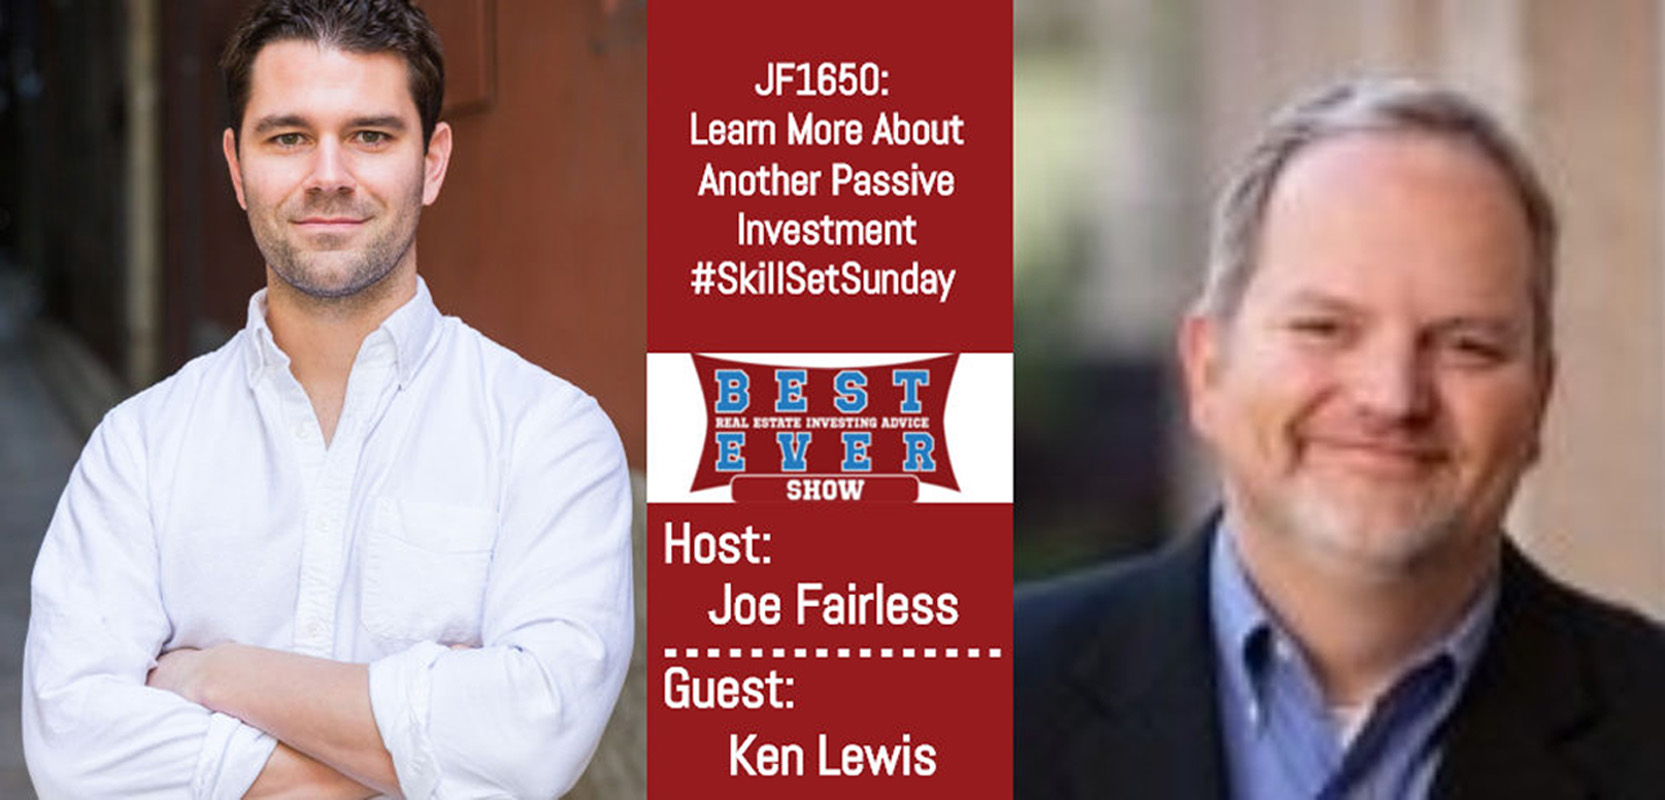 JF1650: Learn More About Another Passive Investment #SkillSetSunday with Ken Lewis